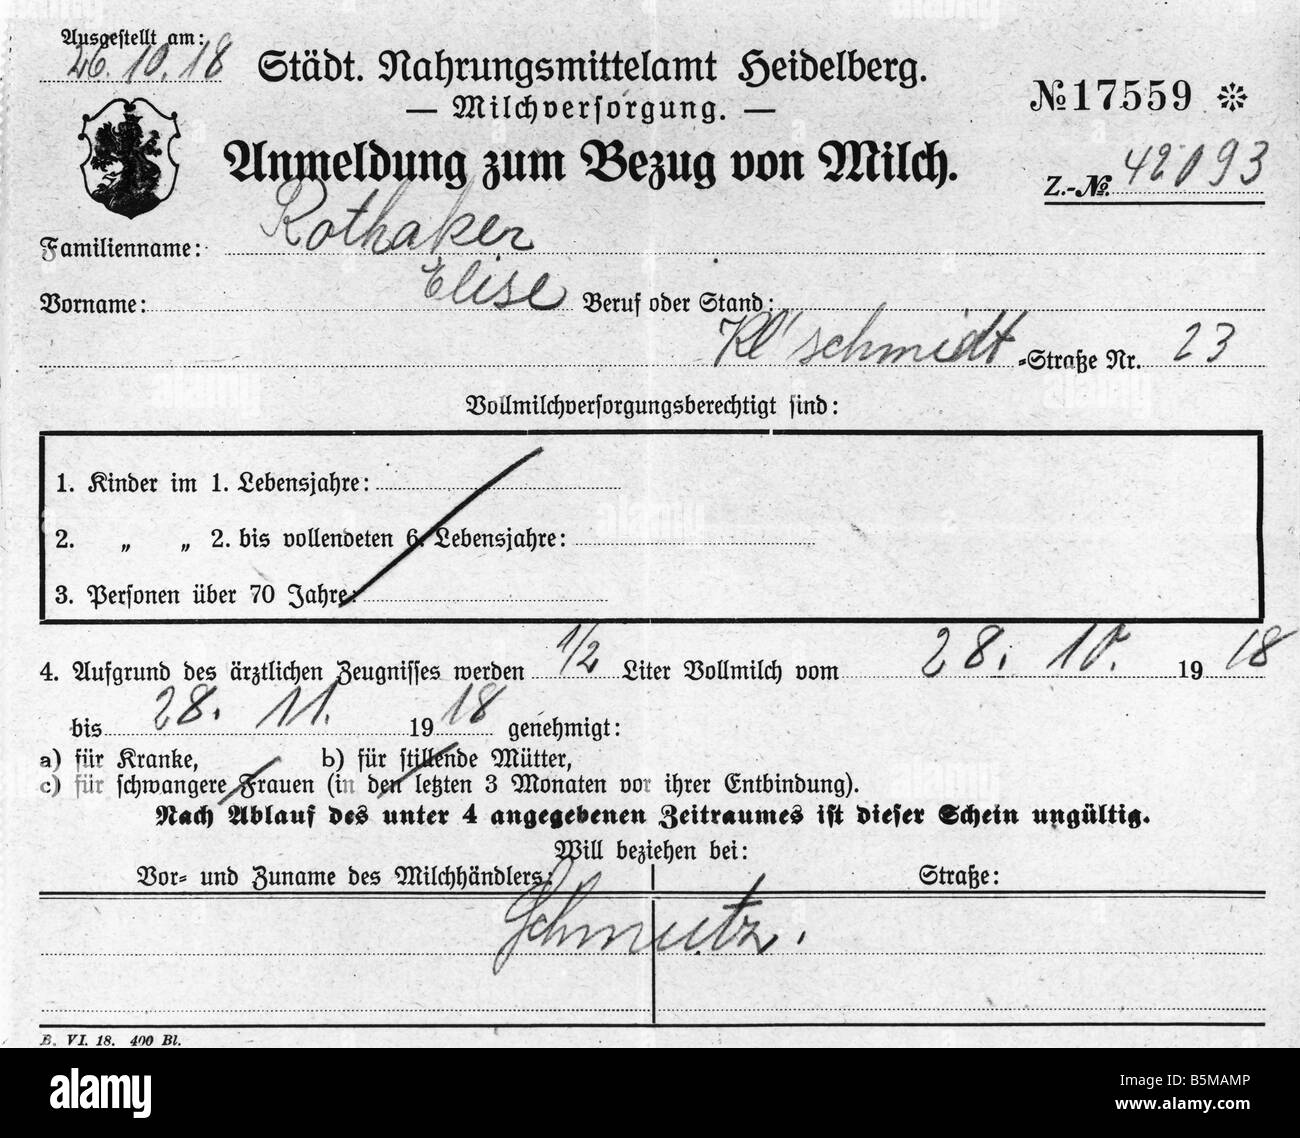 2 G75 L1 1918 1 E Food Rationing Purchase of Milk 1916 History Stock Application Form Germany on application form german, application form switzerland, application form greece, application form singapore,